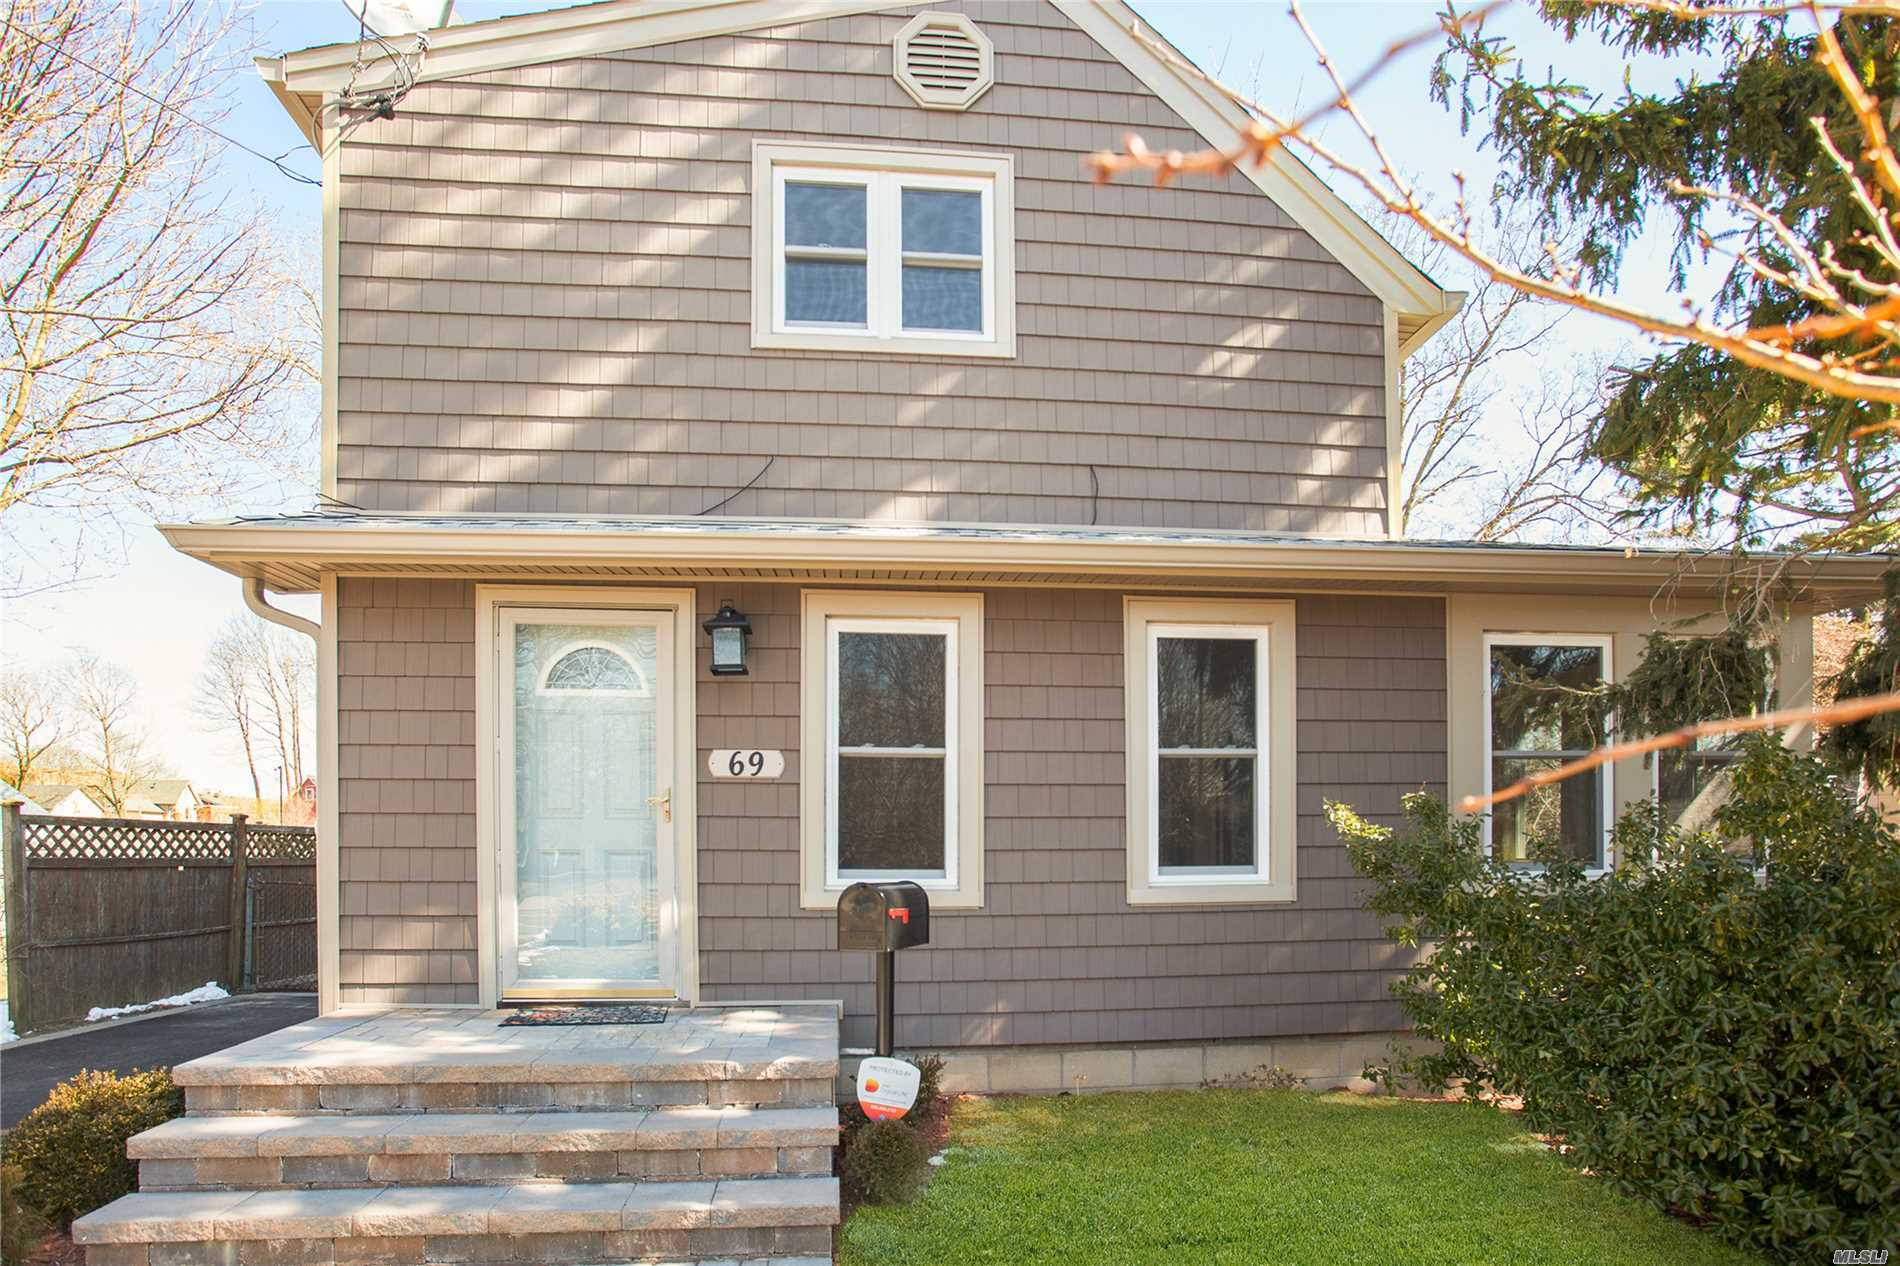 Patchogue Village Living! This Home Is Located Near To Patchogue Village And Has Easy Access To The Fire Island Ferry. So Much Potential. Newer Windows And Siding. Spacious Rooms. Large Property With Large Detached Garage. Taxes W/Star 7993.71